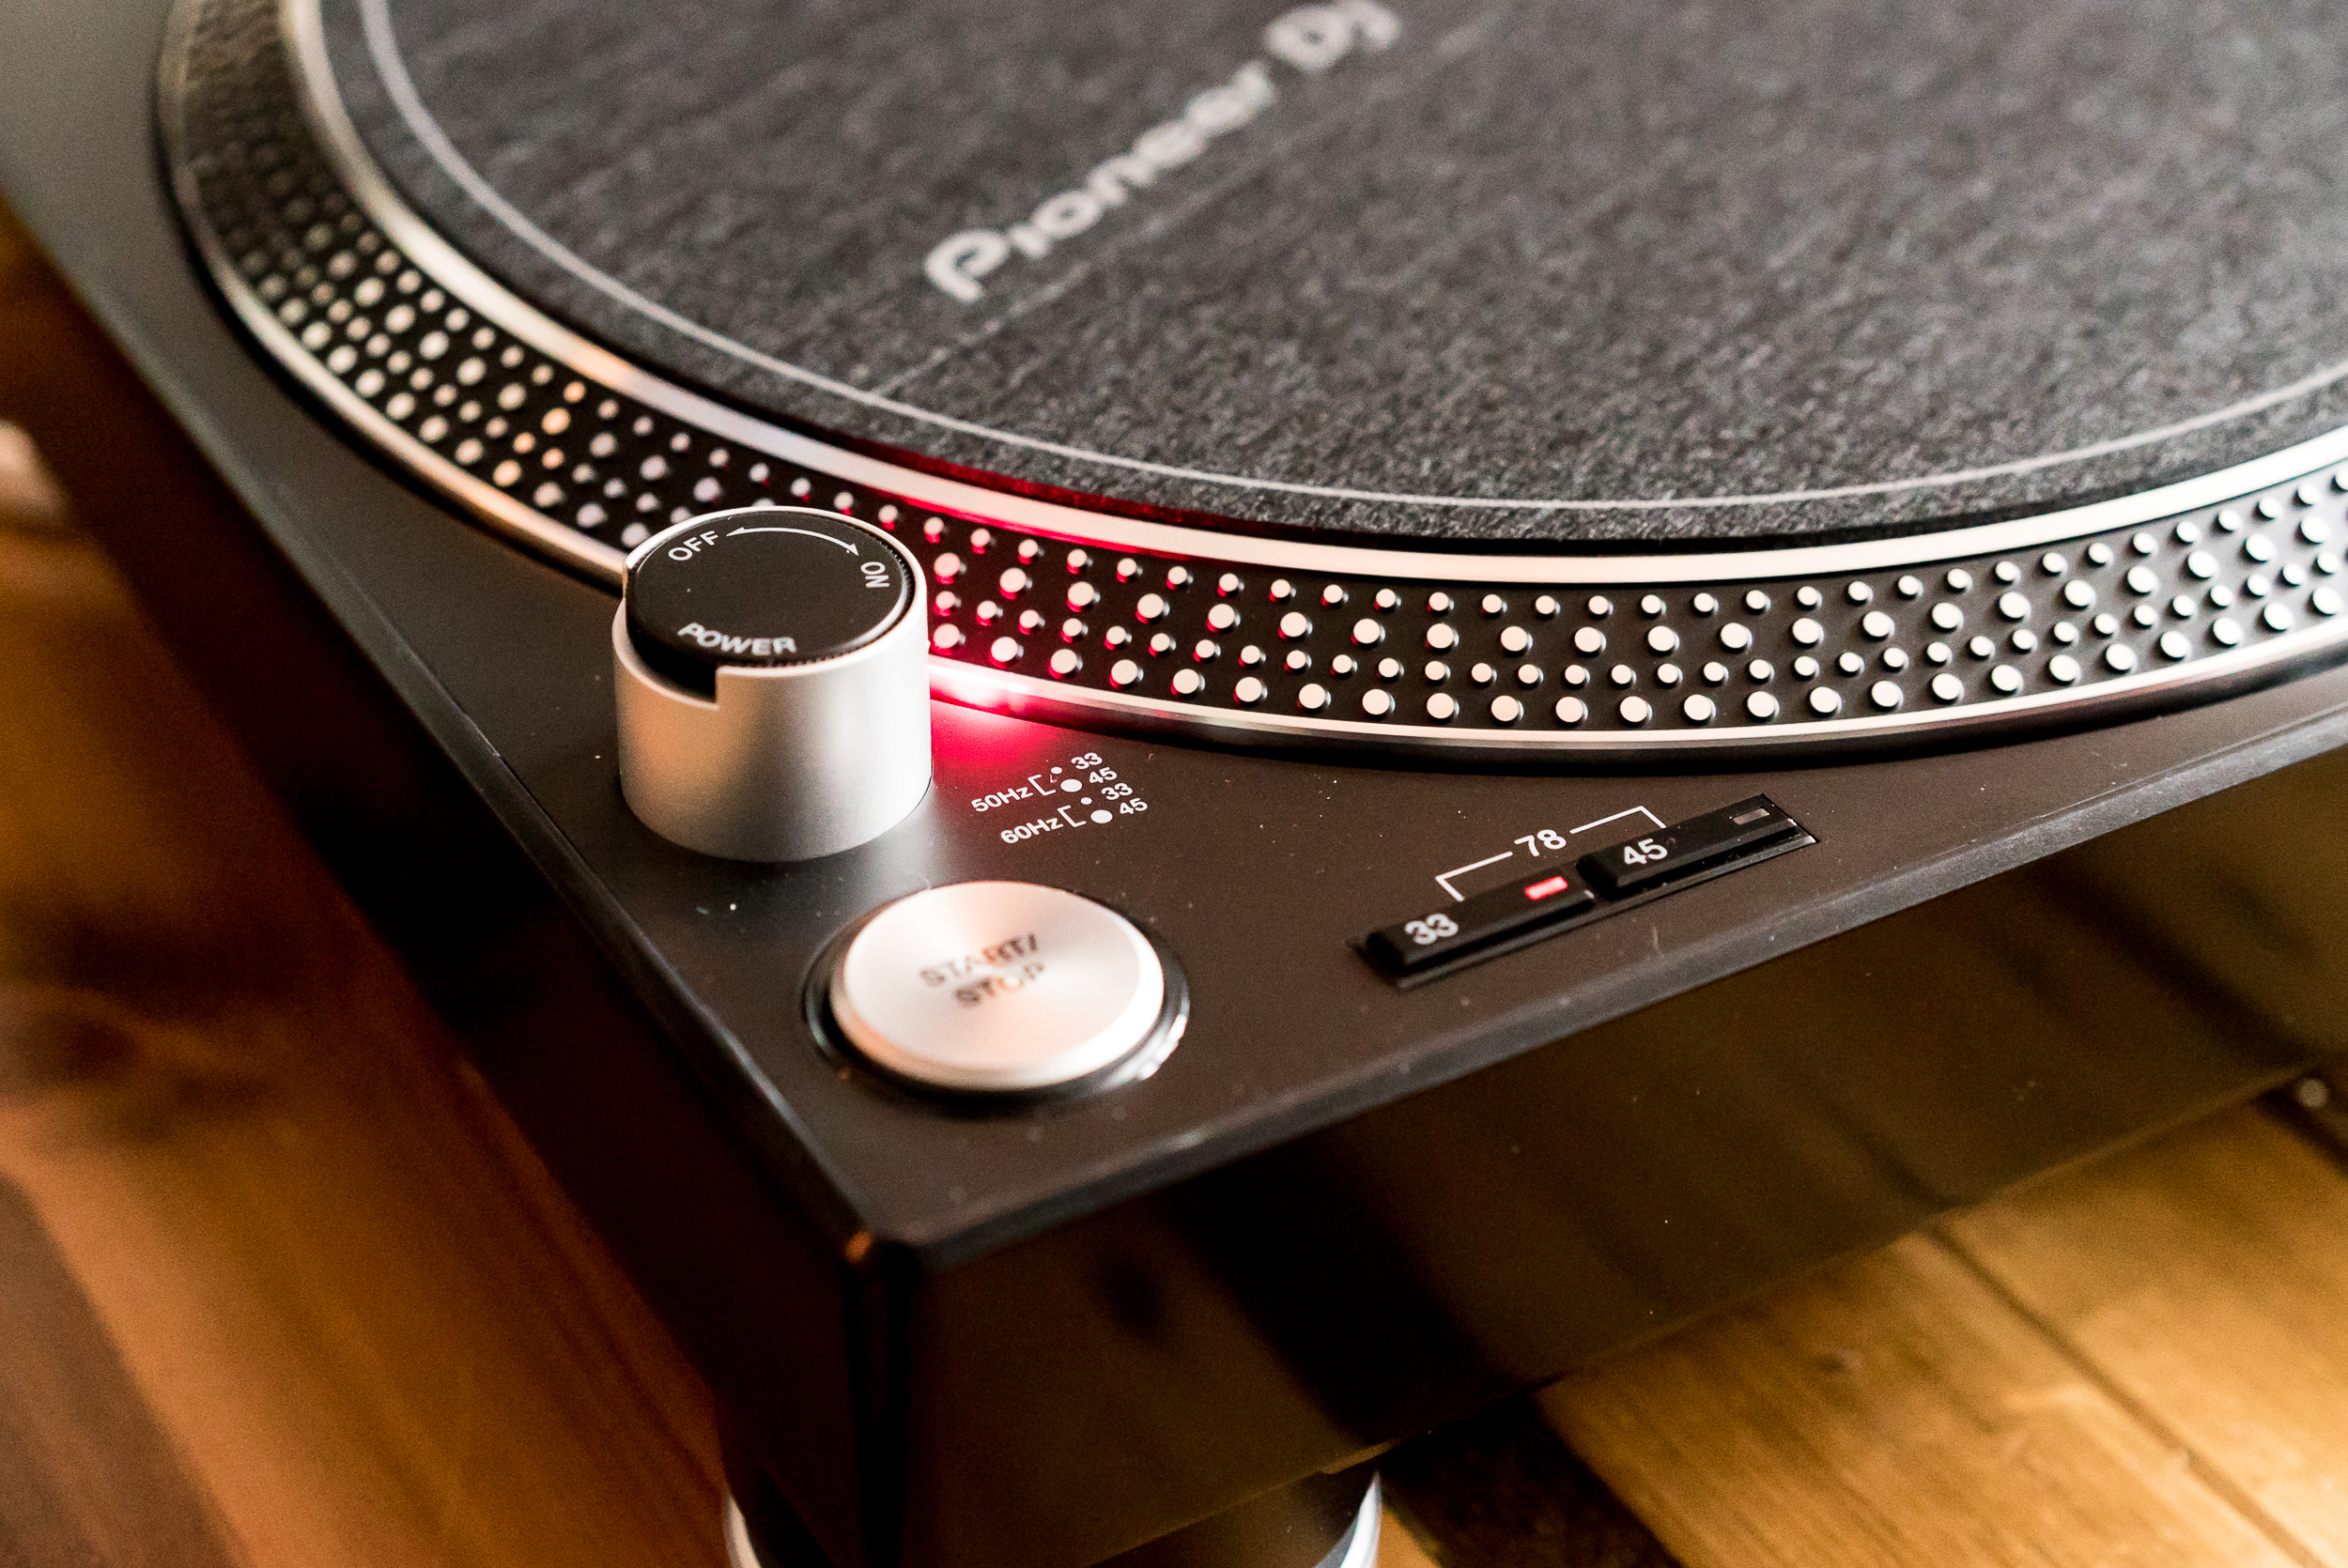 The PLX-500 features the classic strobe speed illumination of a Technics turntable.